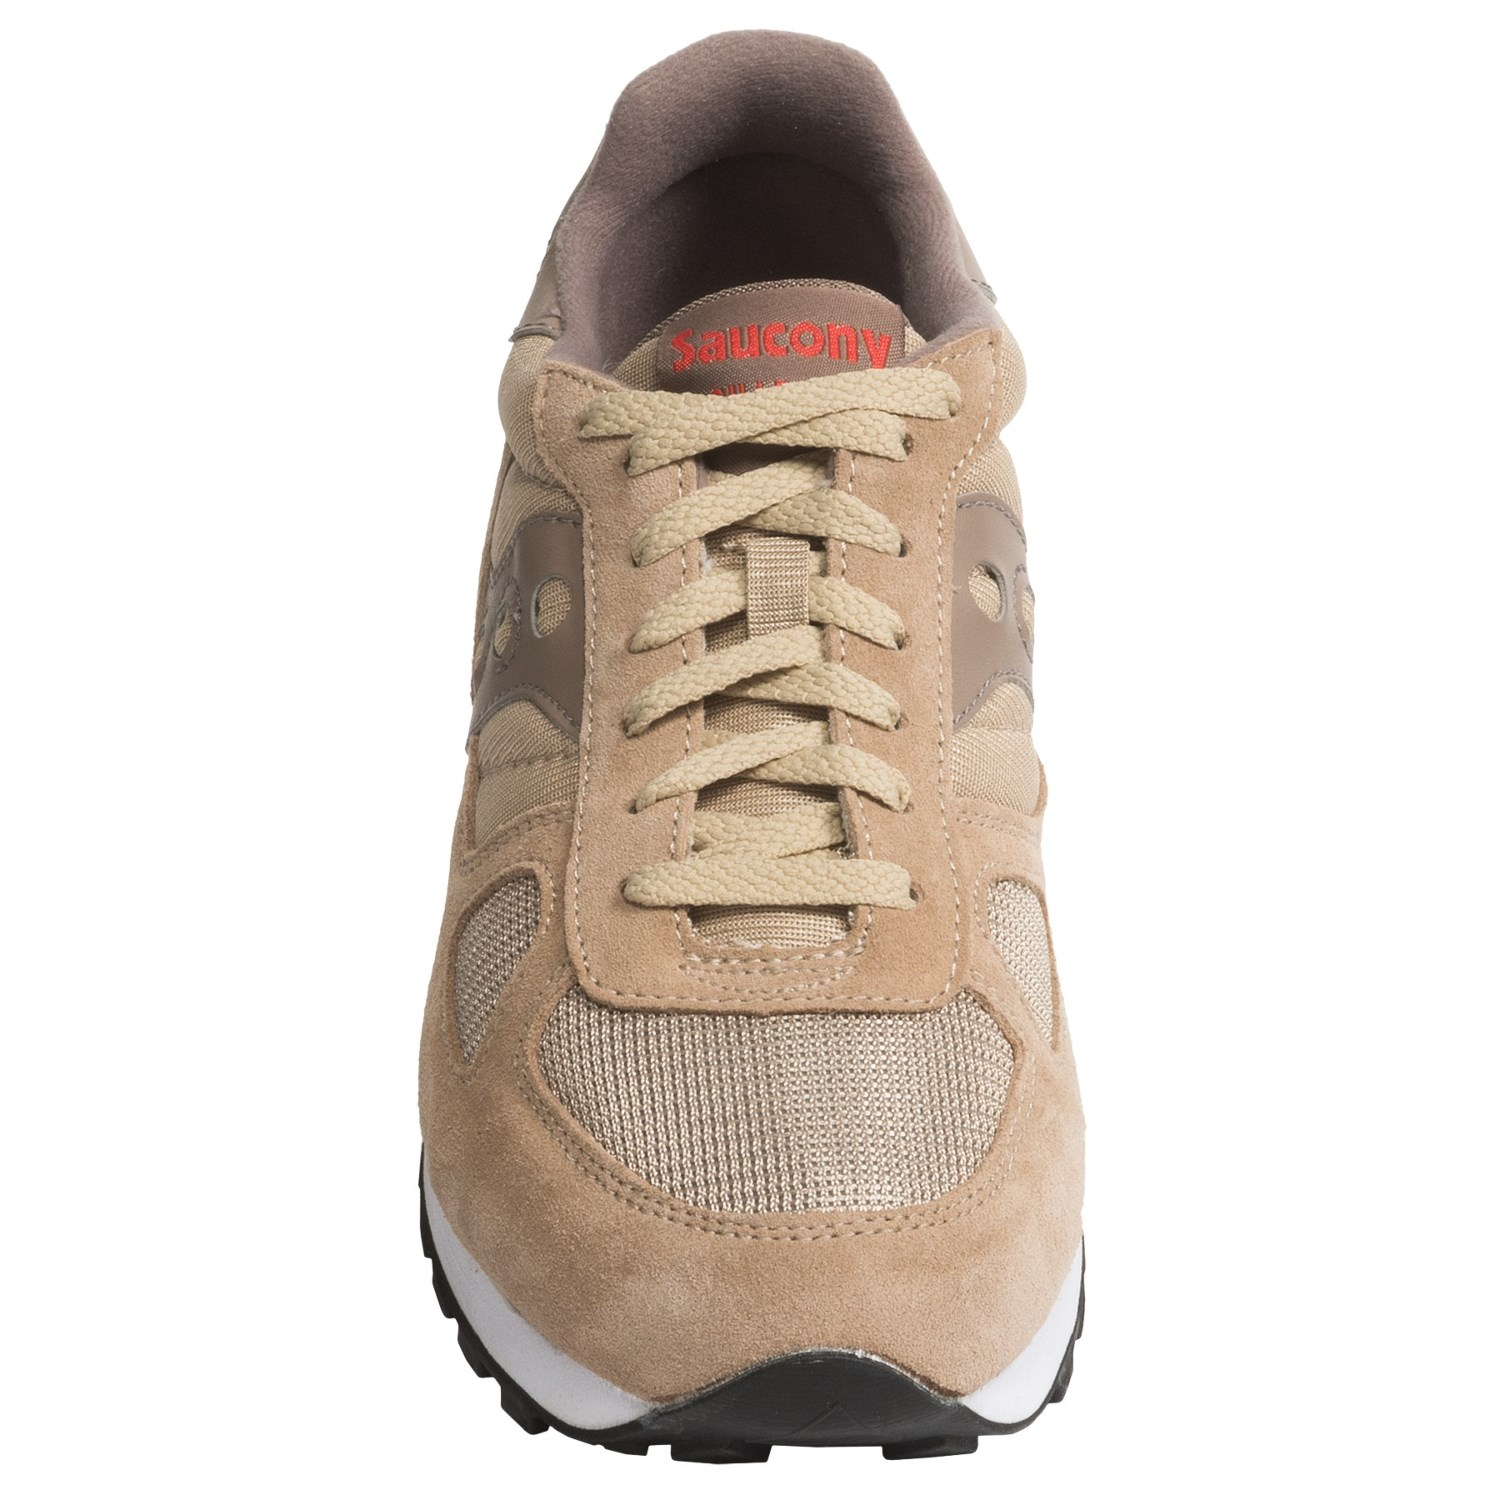 Original Saucony Shoes Mens